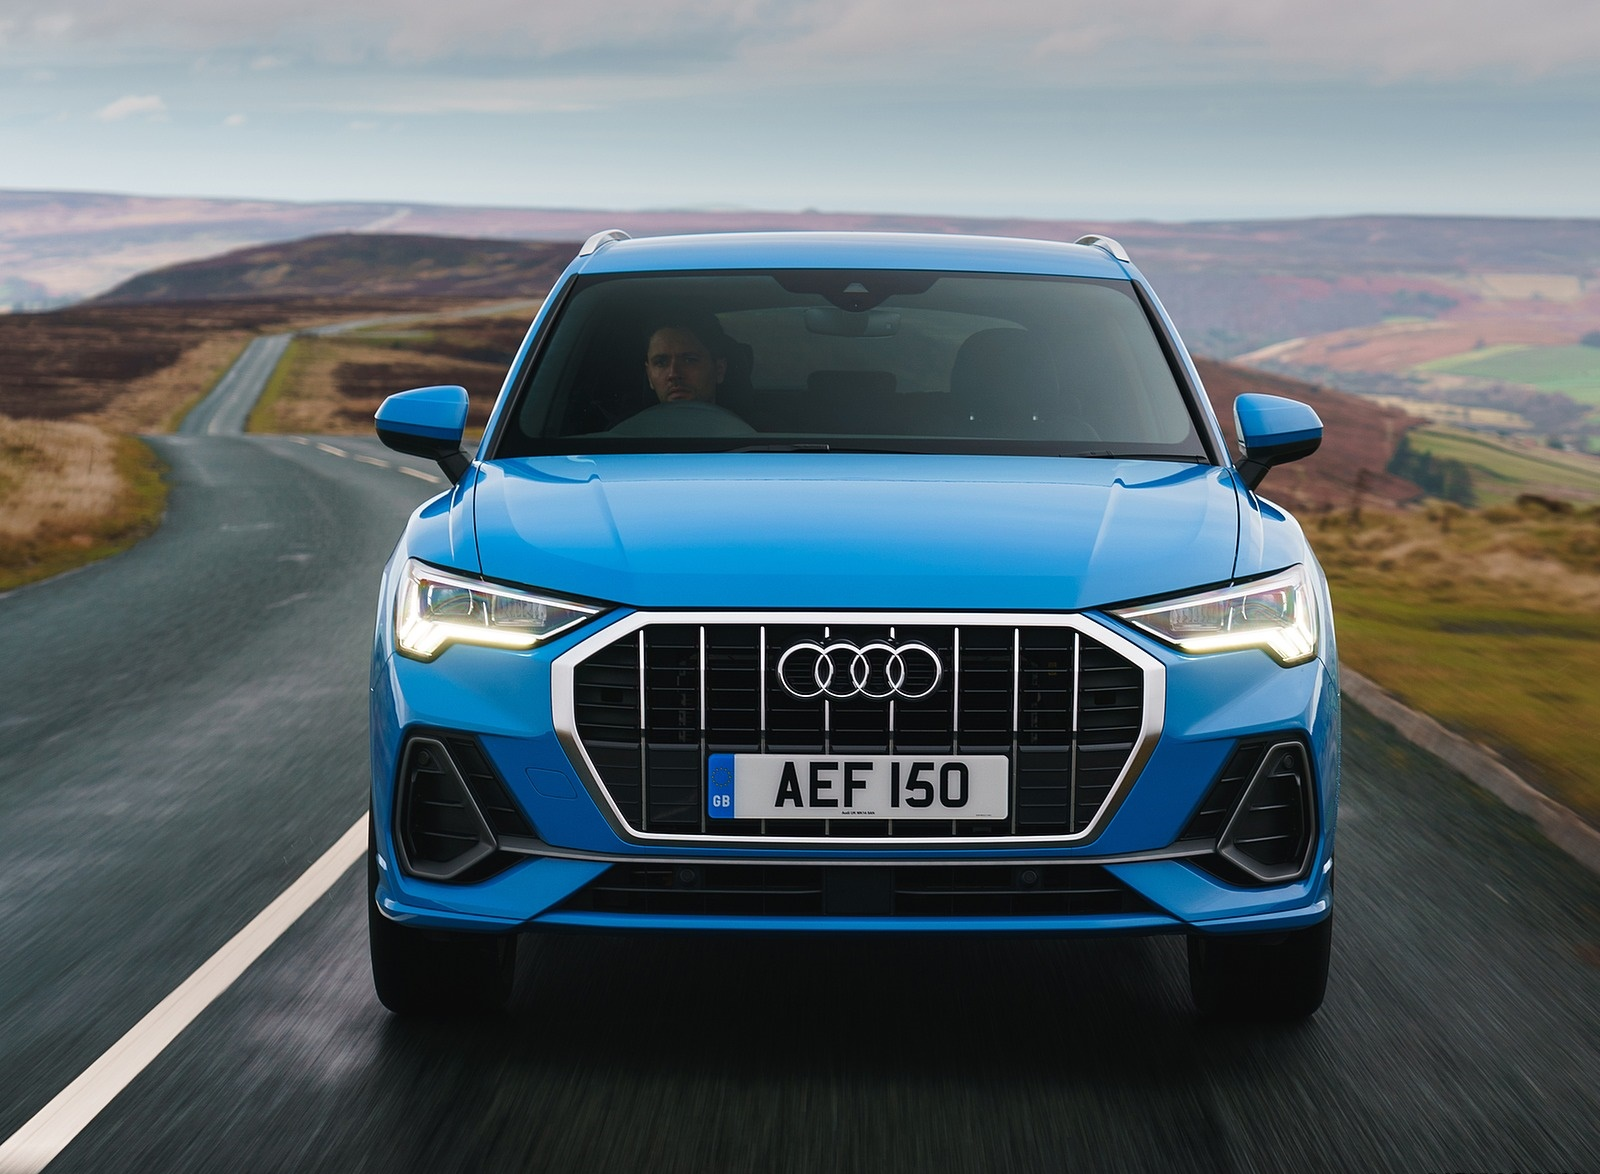 2019 Audi Q3 35 TFSI (UK-Spec) Front Wallpapers (2)